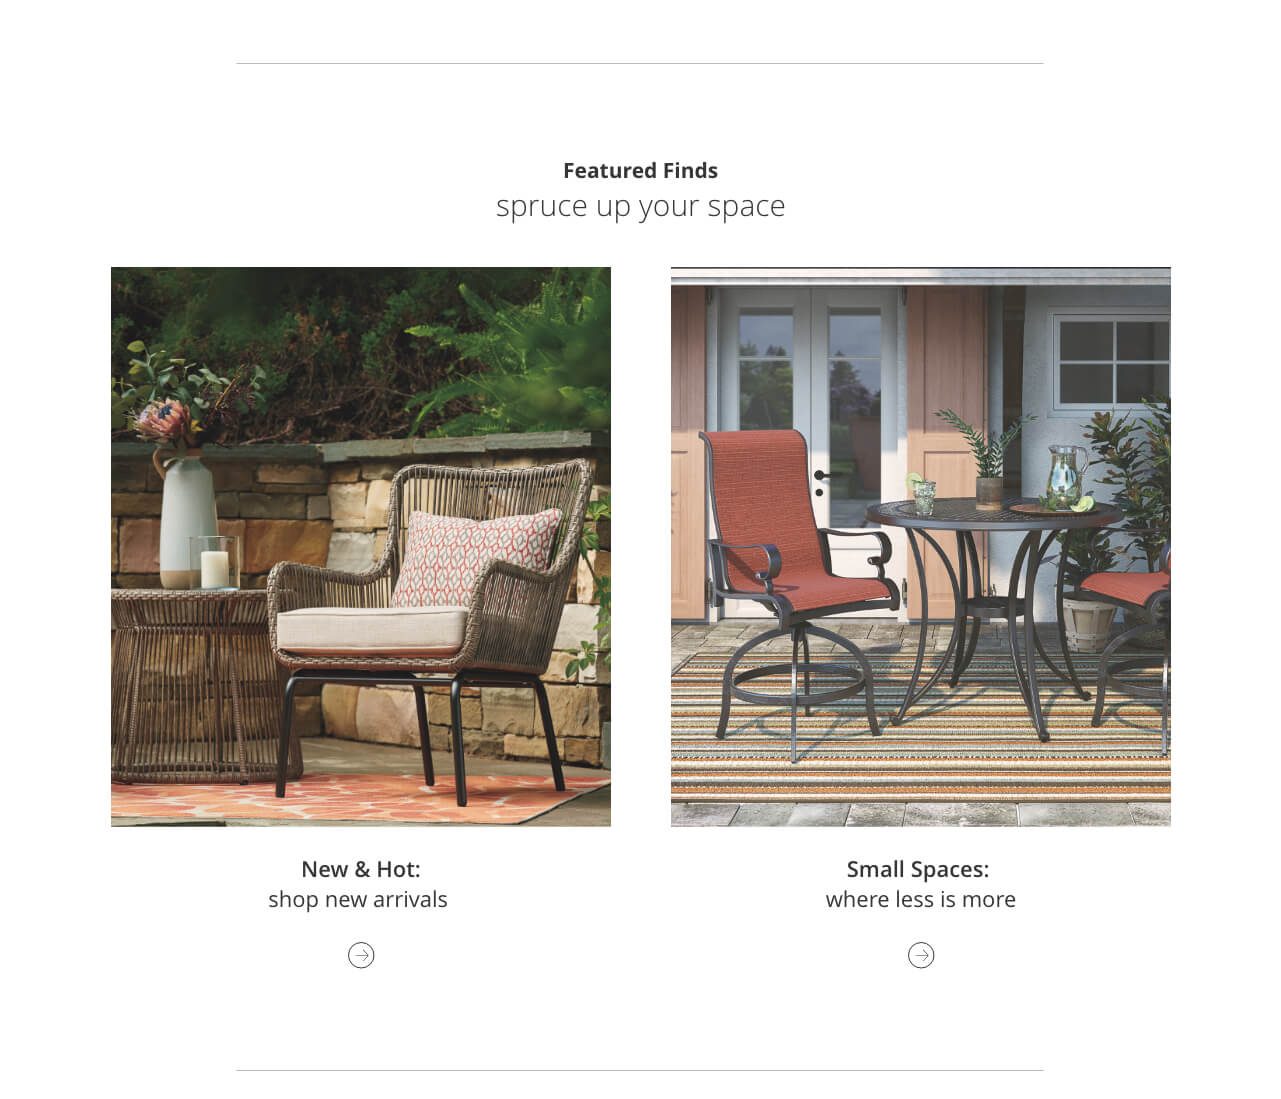 New Outdoor Furniture, Small Space Outdoor Furniture - Outdoor Furniture & Accessories Ashley Furniture HomeStore